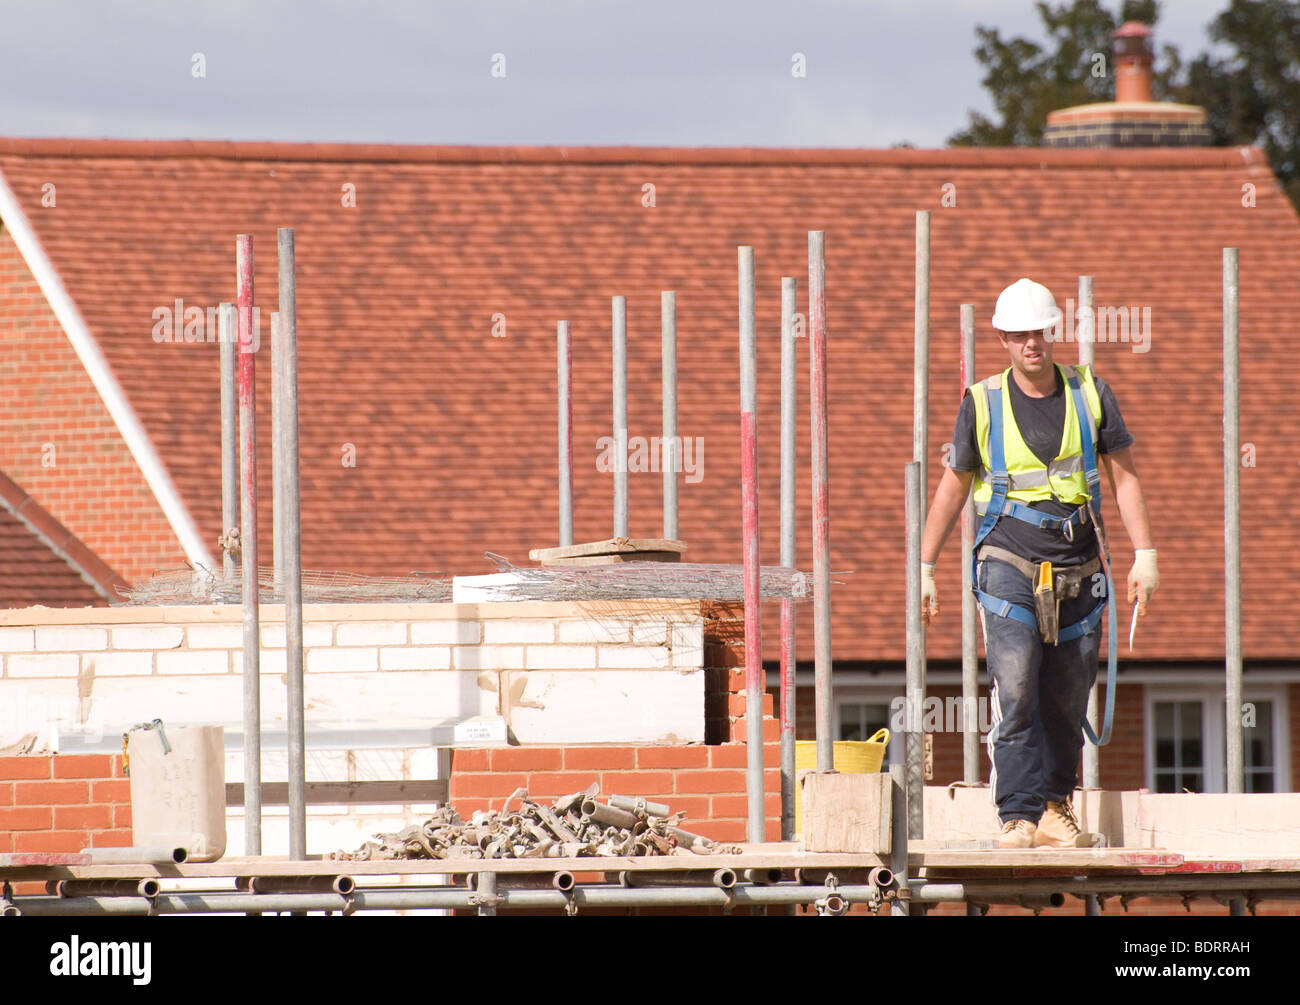 A Construction worker walking across scaffolding platform by a house under construction. - Stock Image